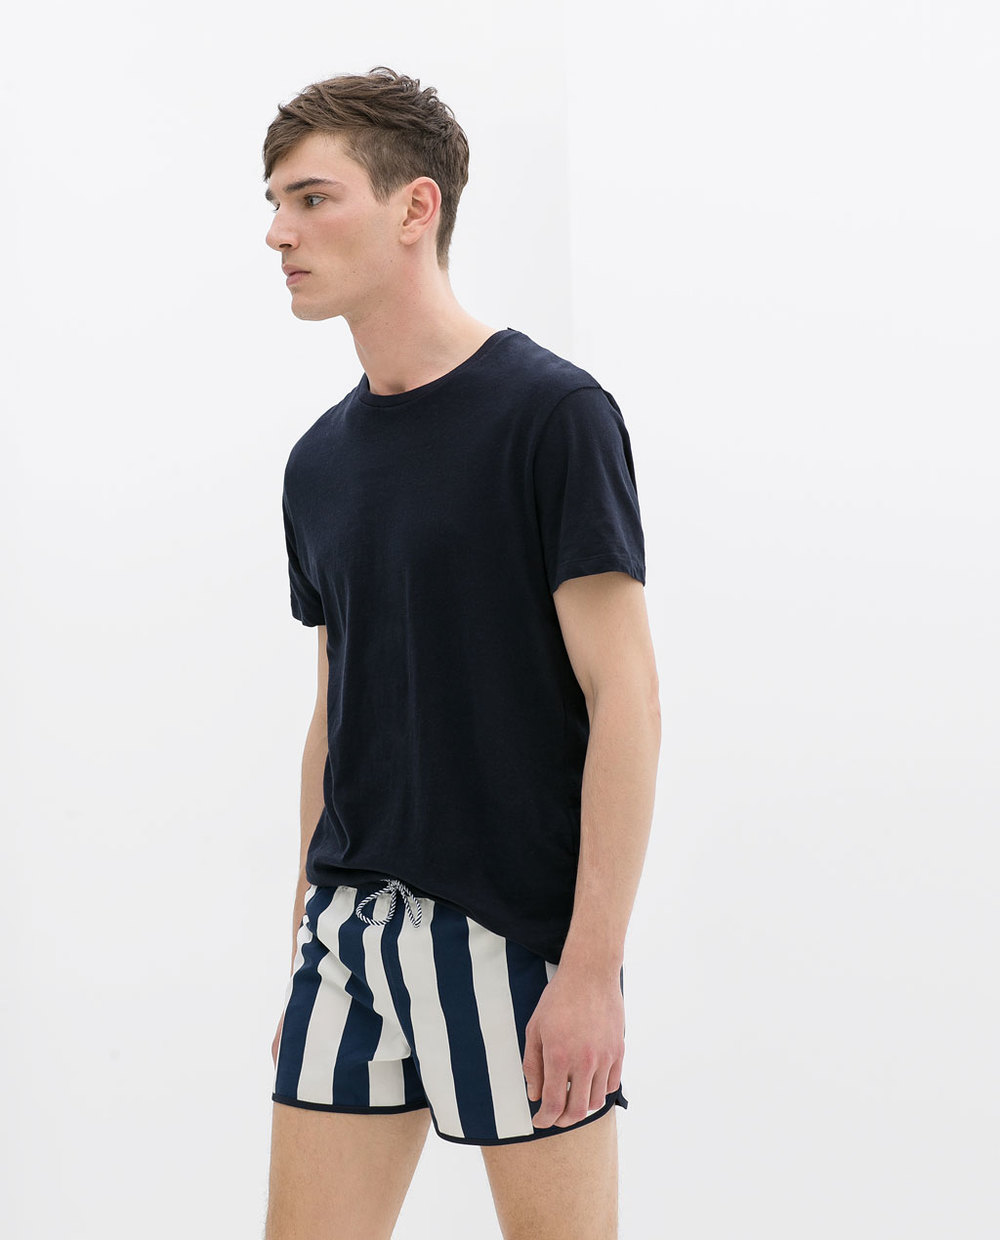 Striped Swim Shorts: ZARA £12.99